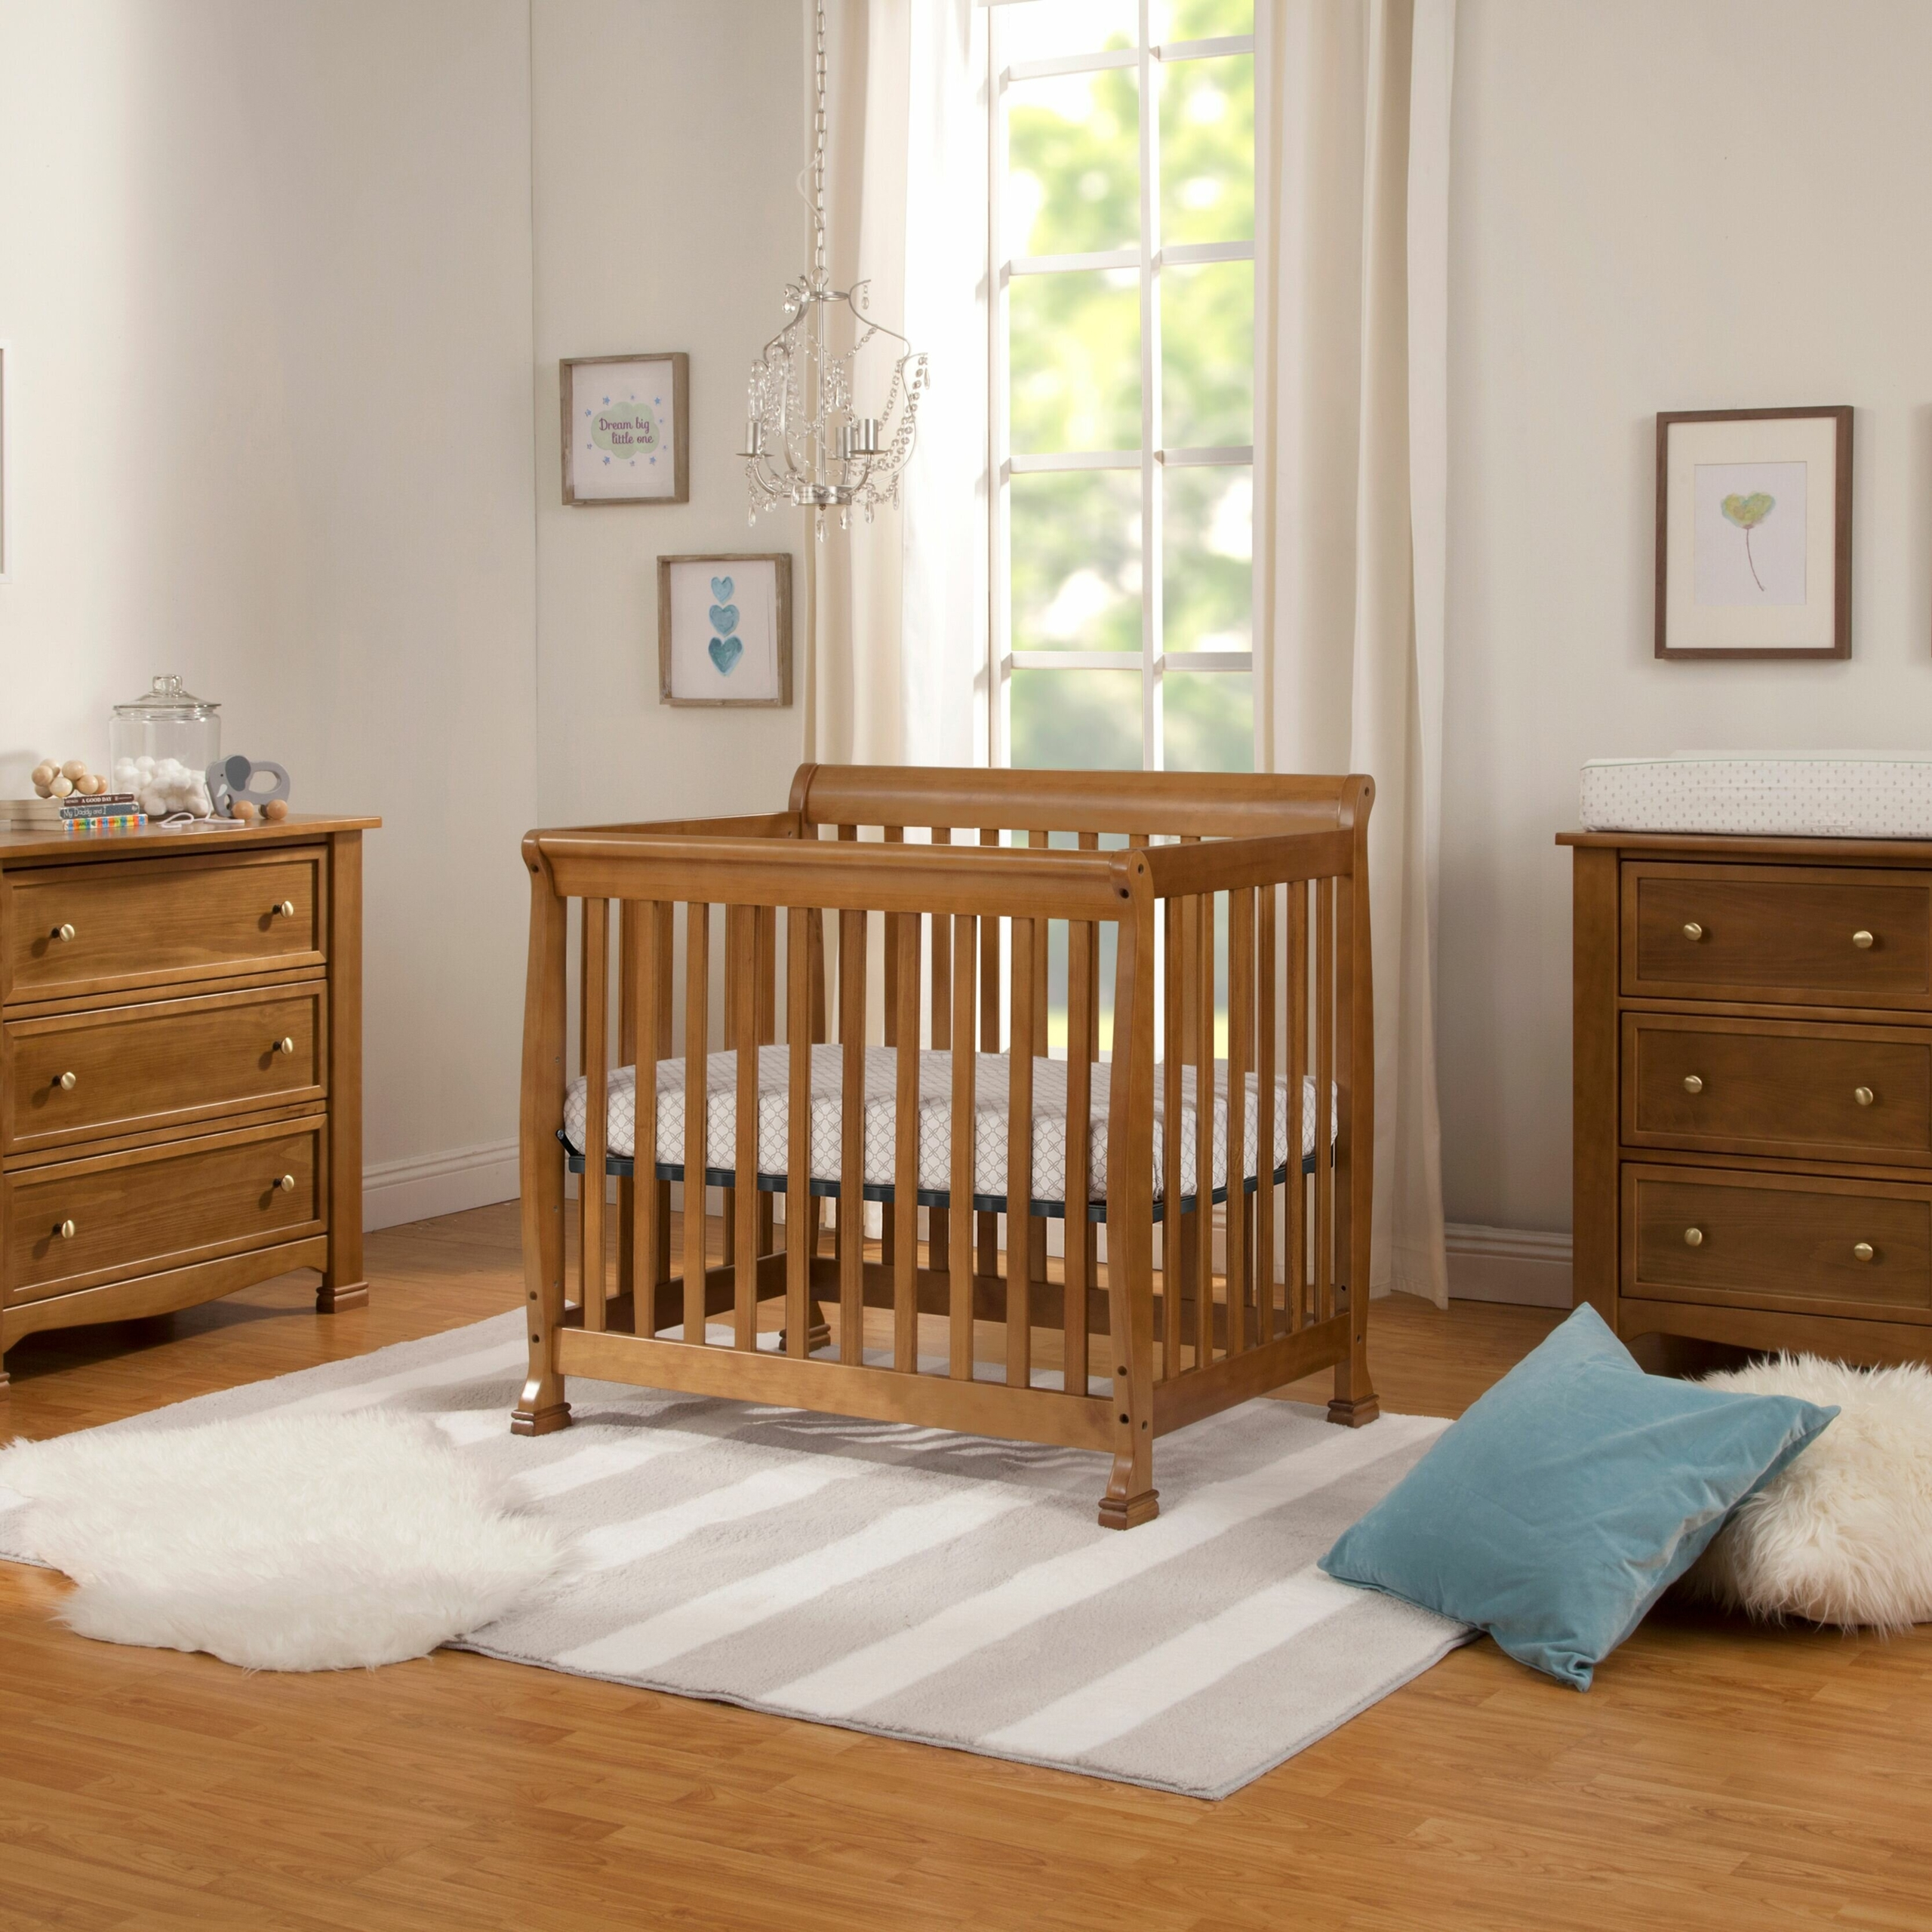 5 Expert Tips To Choose A Nursery Furniture Set You Ll Love In 2021 Visualhunt